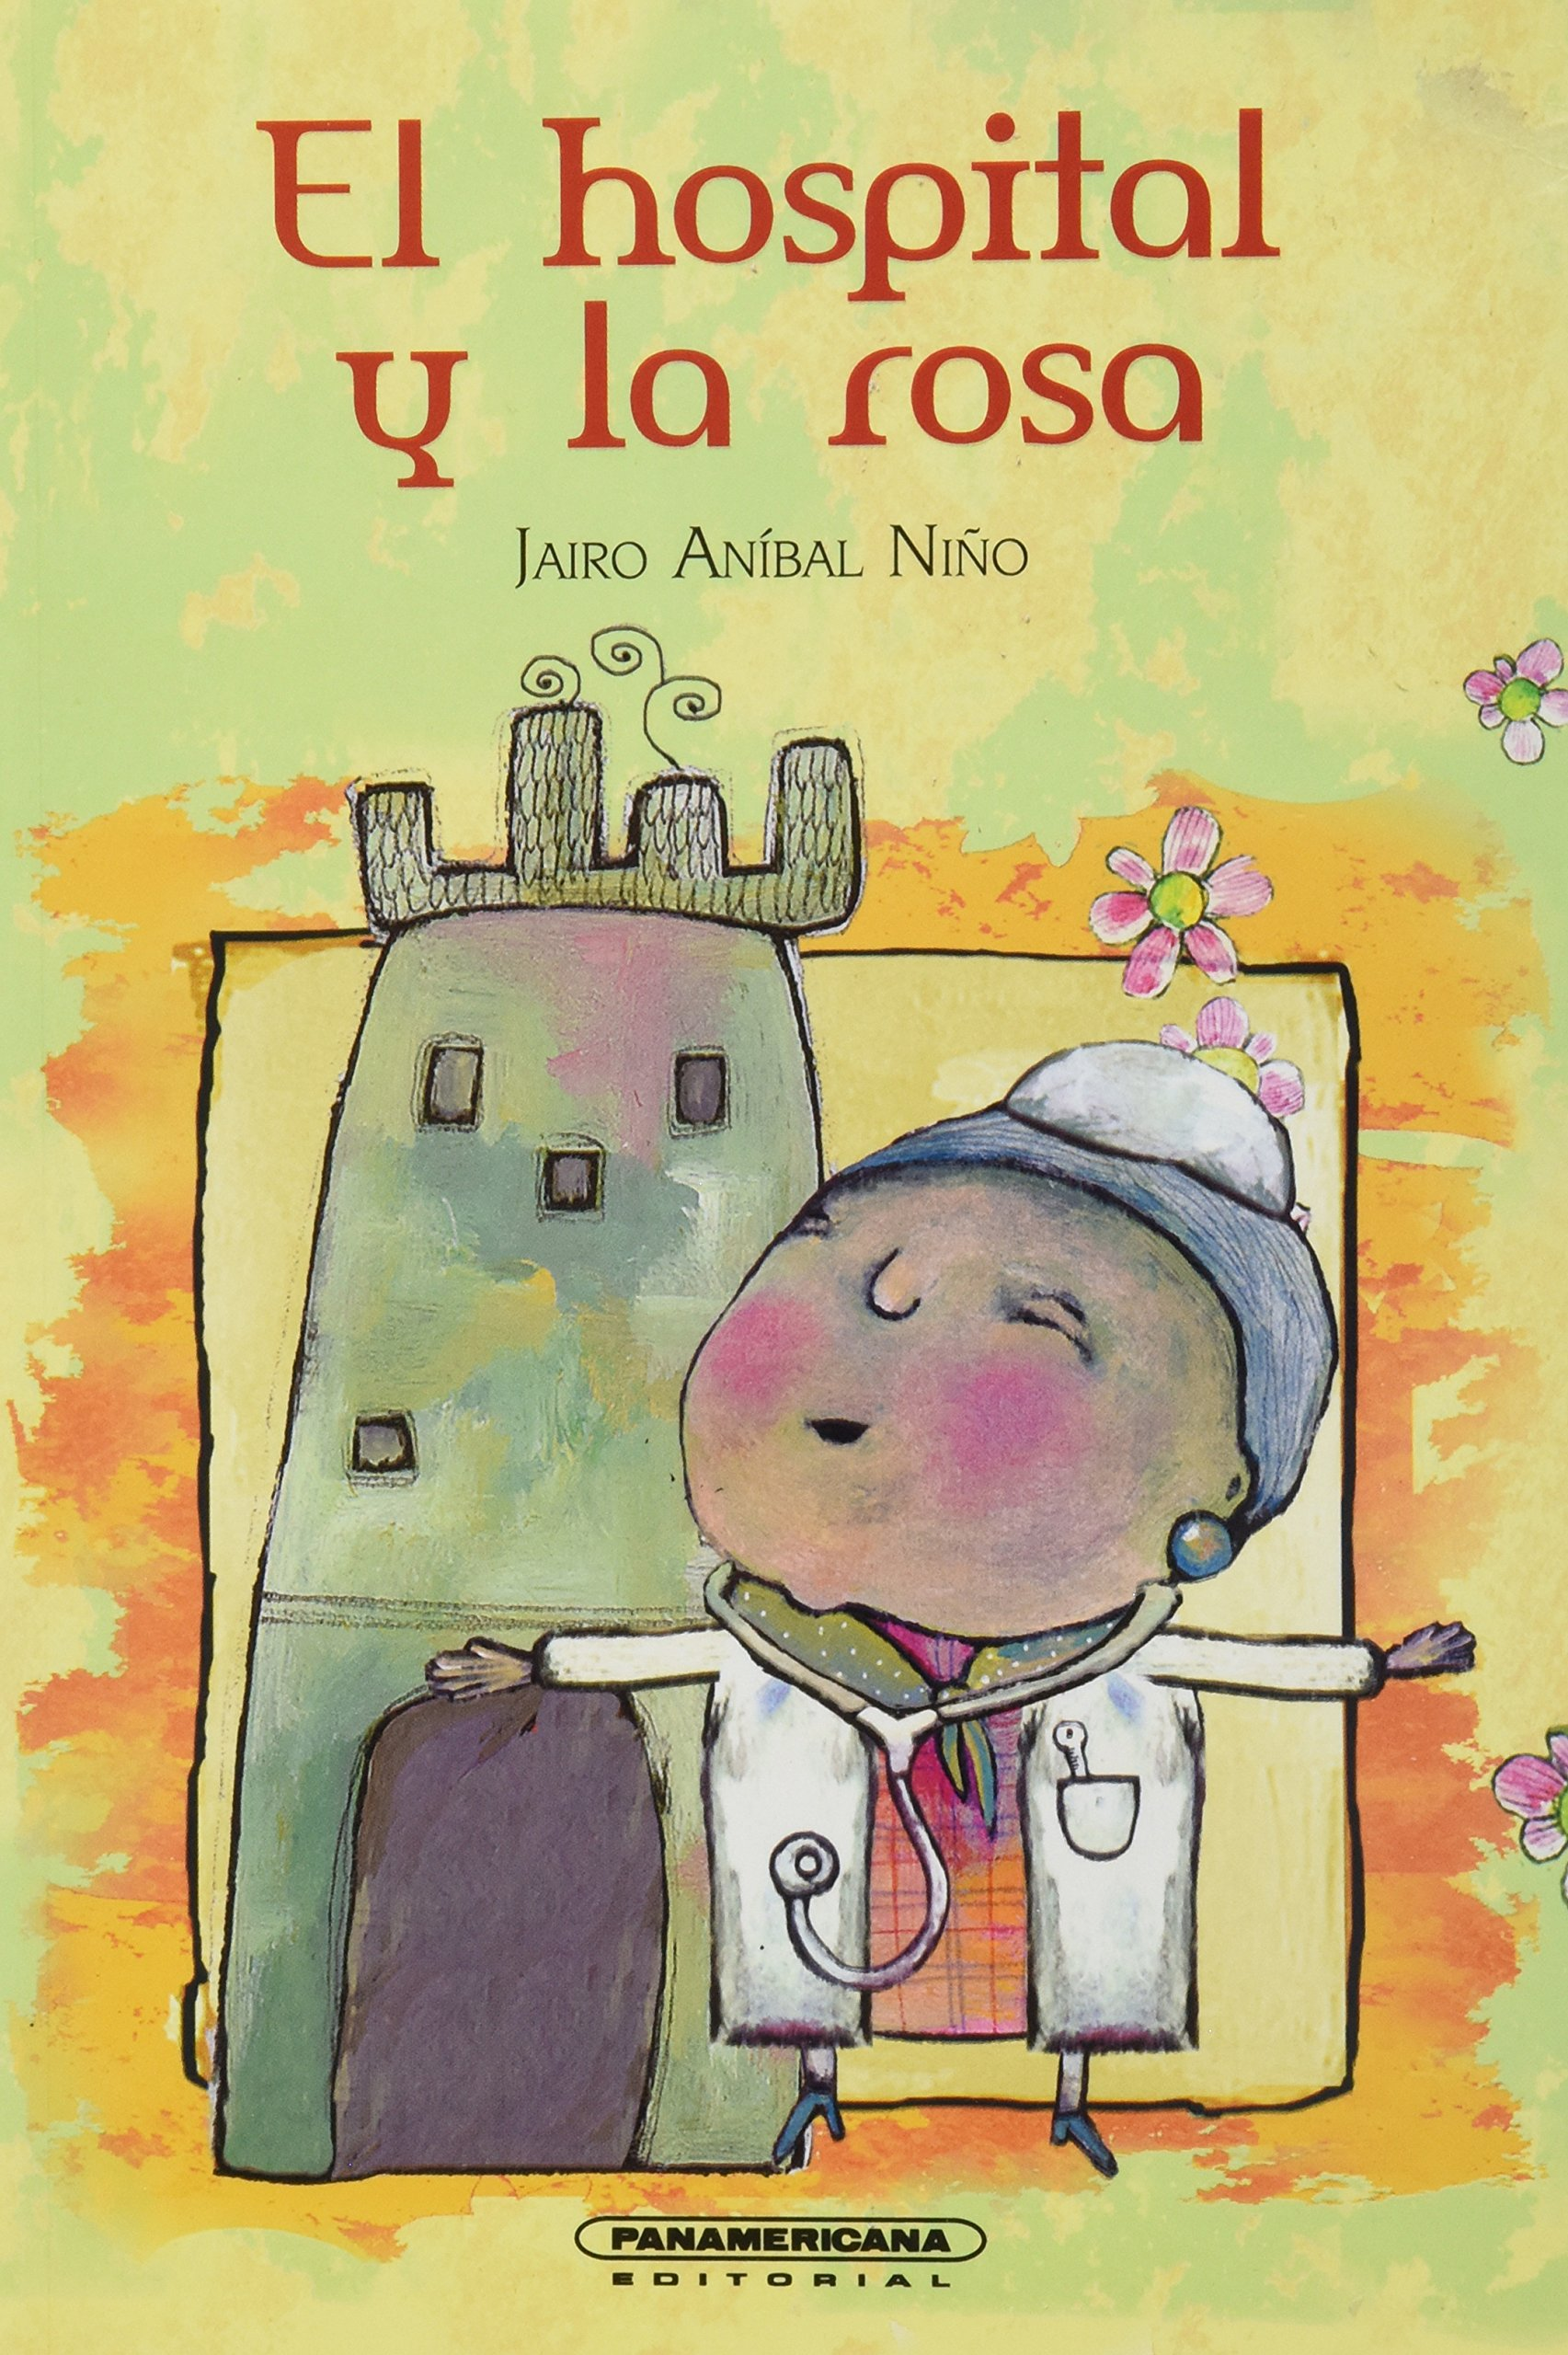 El hospital y la rosa (Literatura Juvenil / Junior Literature) (Spanish Edition): Jairo Anibal Niño, Maria Fernanda Mantilla: 9789583017247: Amazon.com: ...